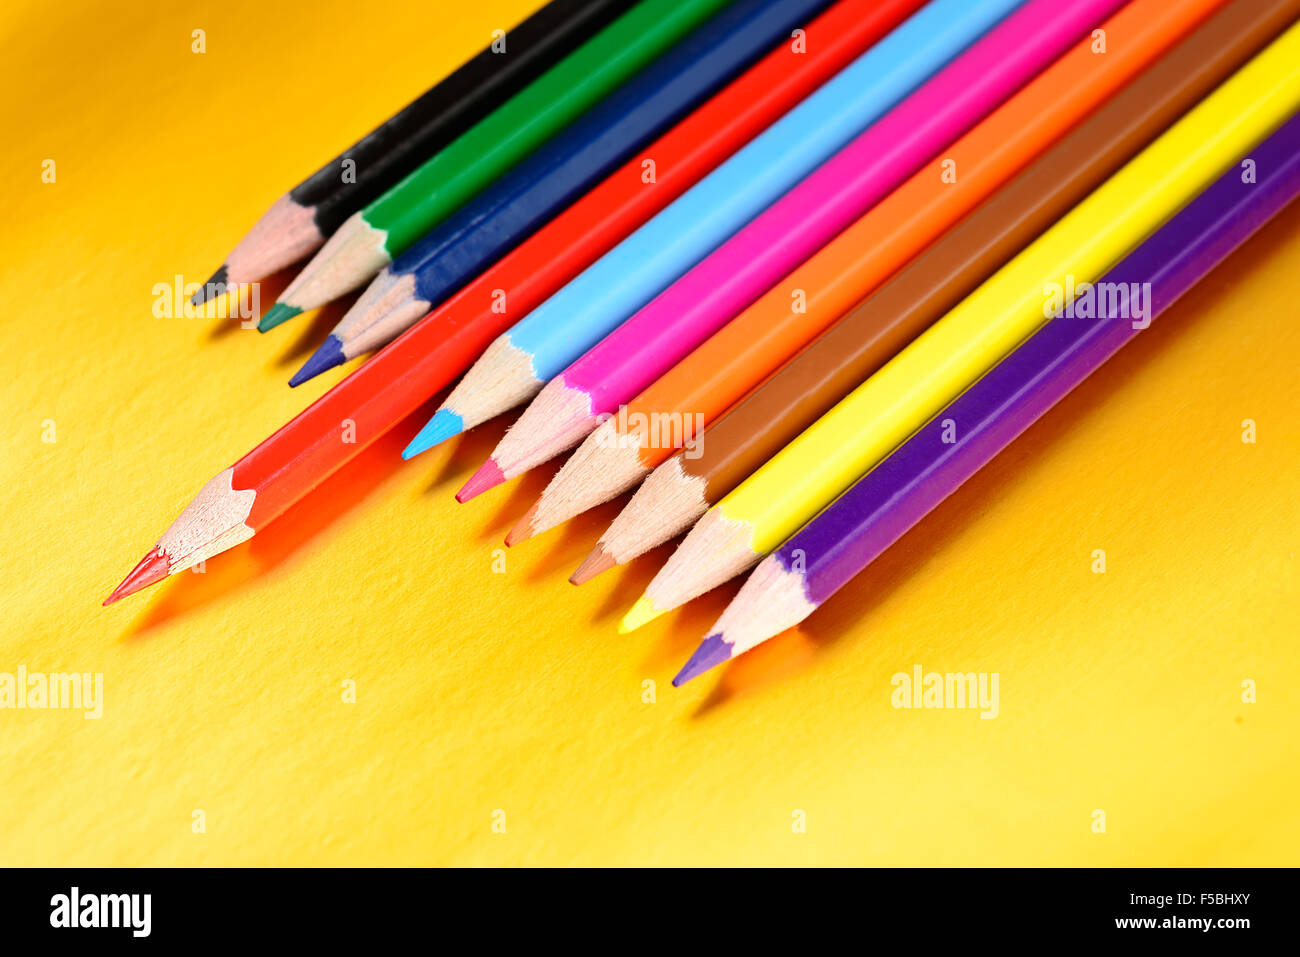 color pencils with different color over golden background - Stock Image